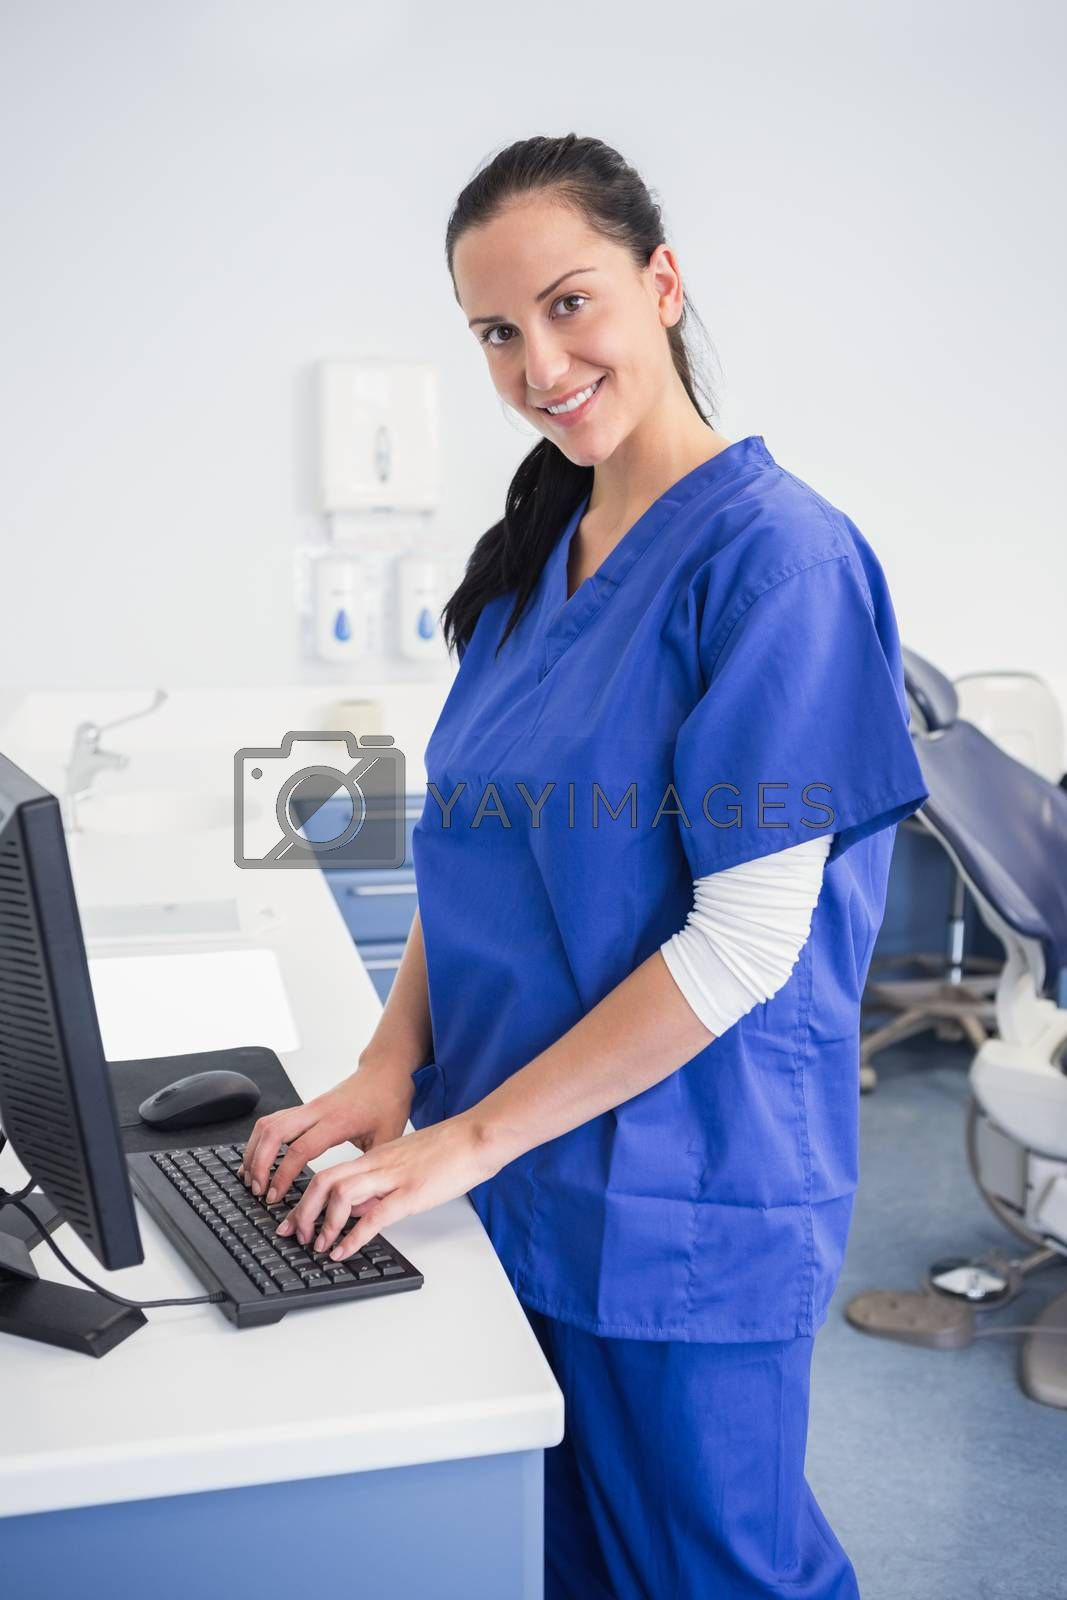 Smiling dentist typing on keyboard in dental clinic